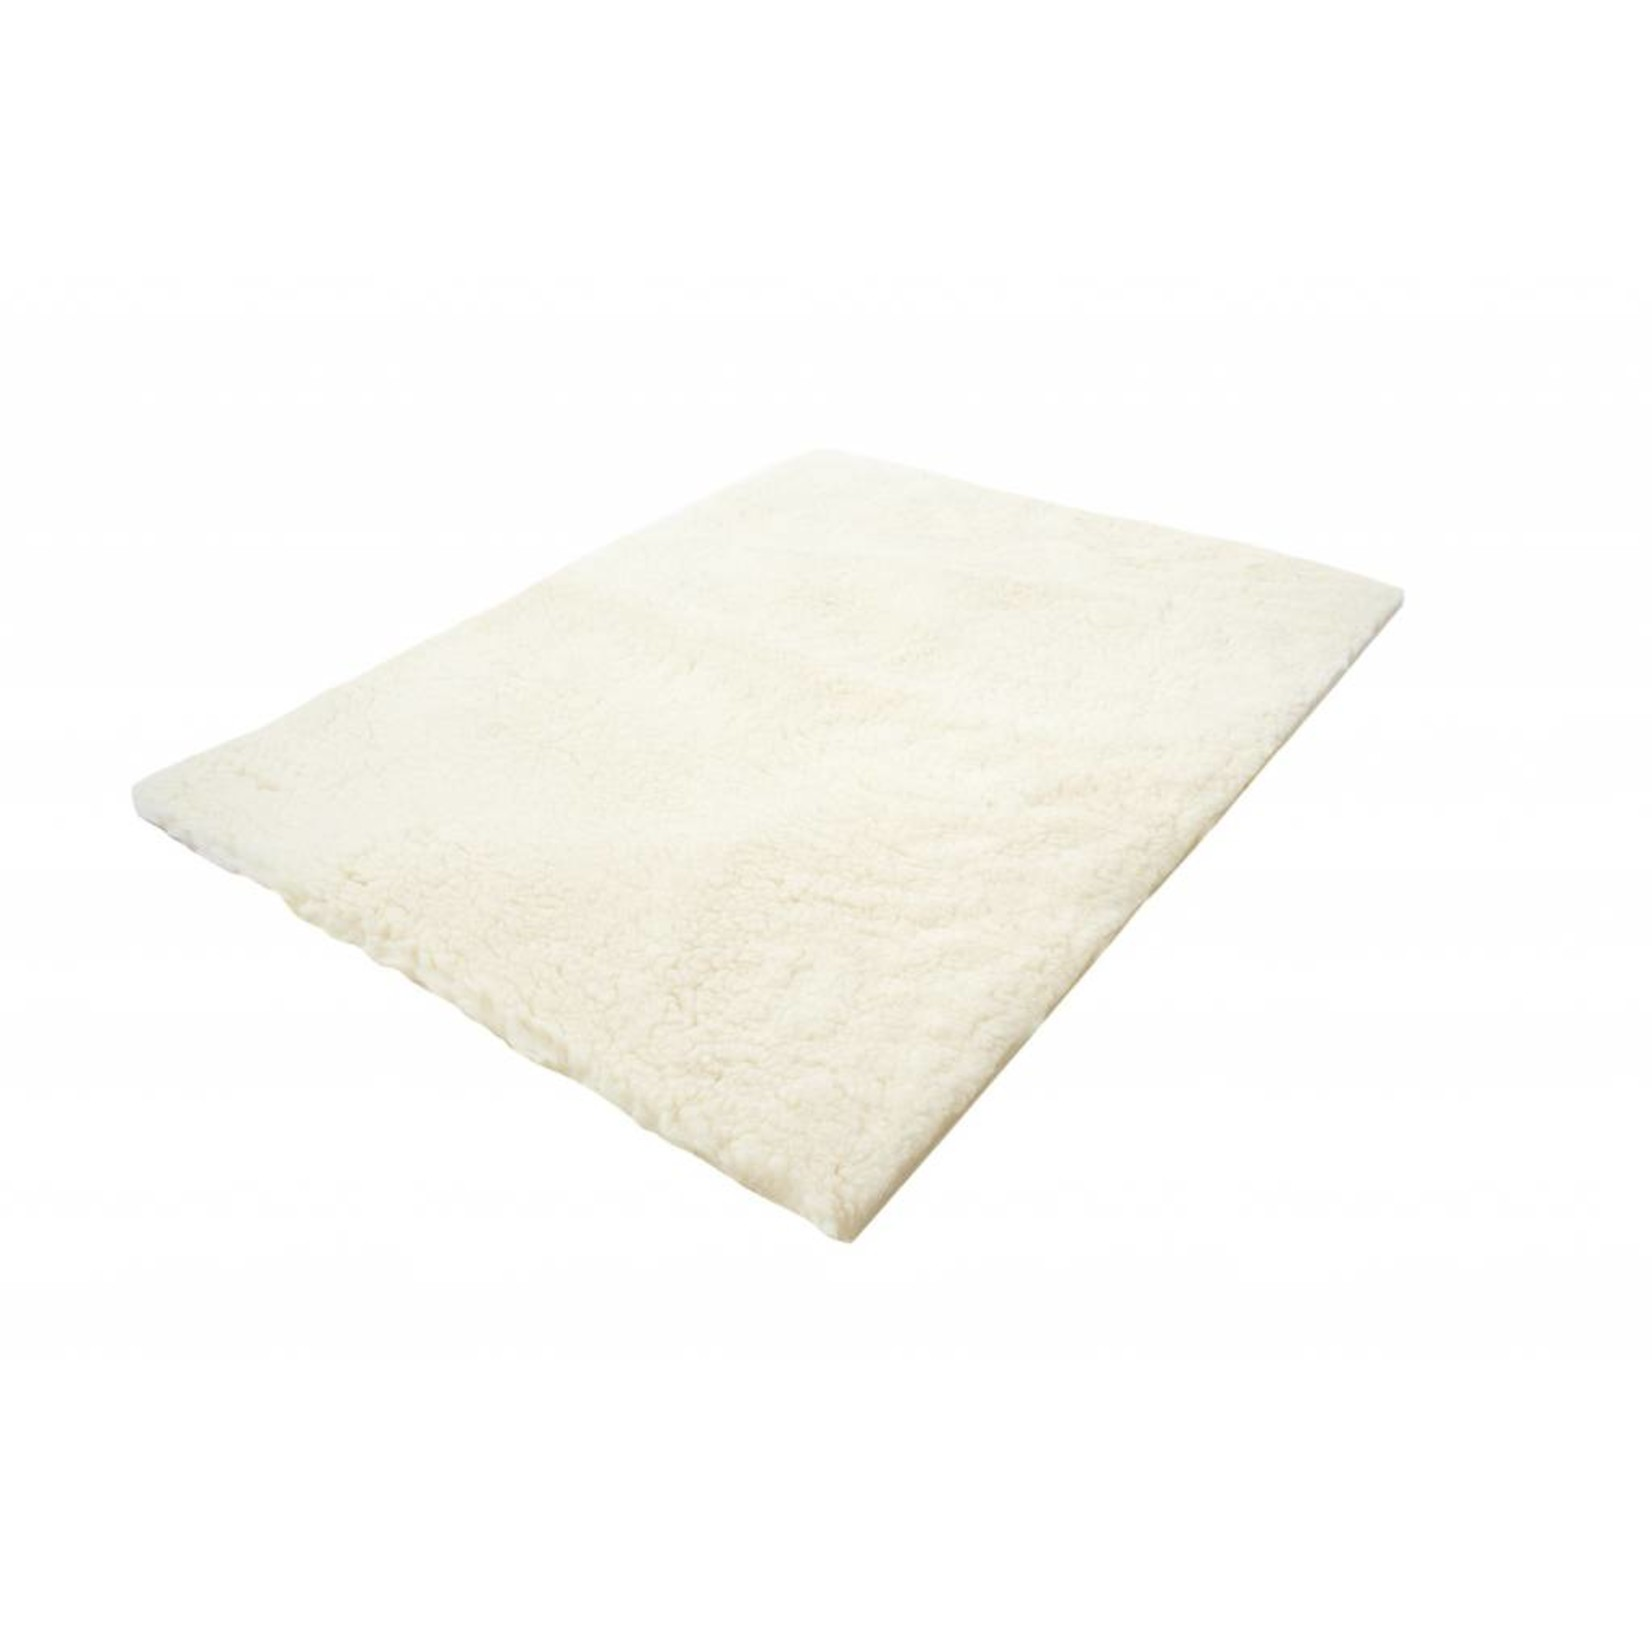 Essential Medical SHEEPETTE SYNTH LAMBSKIN - 24 X30